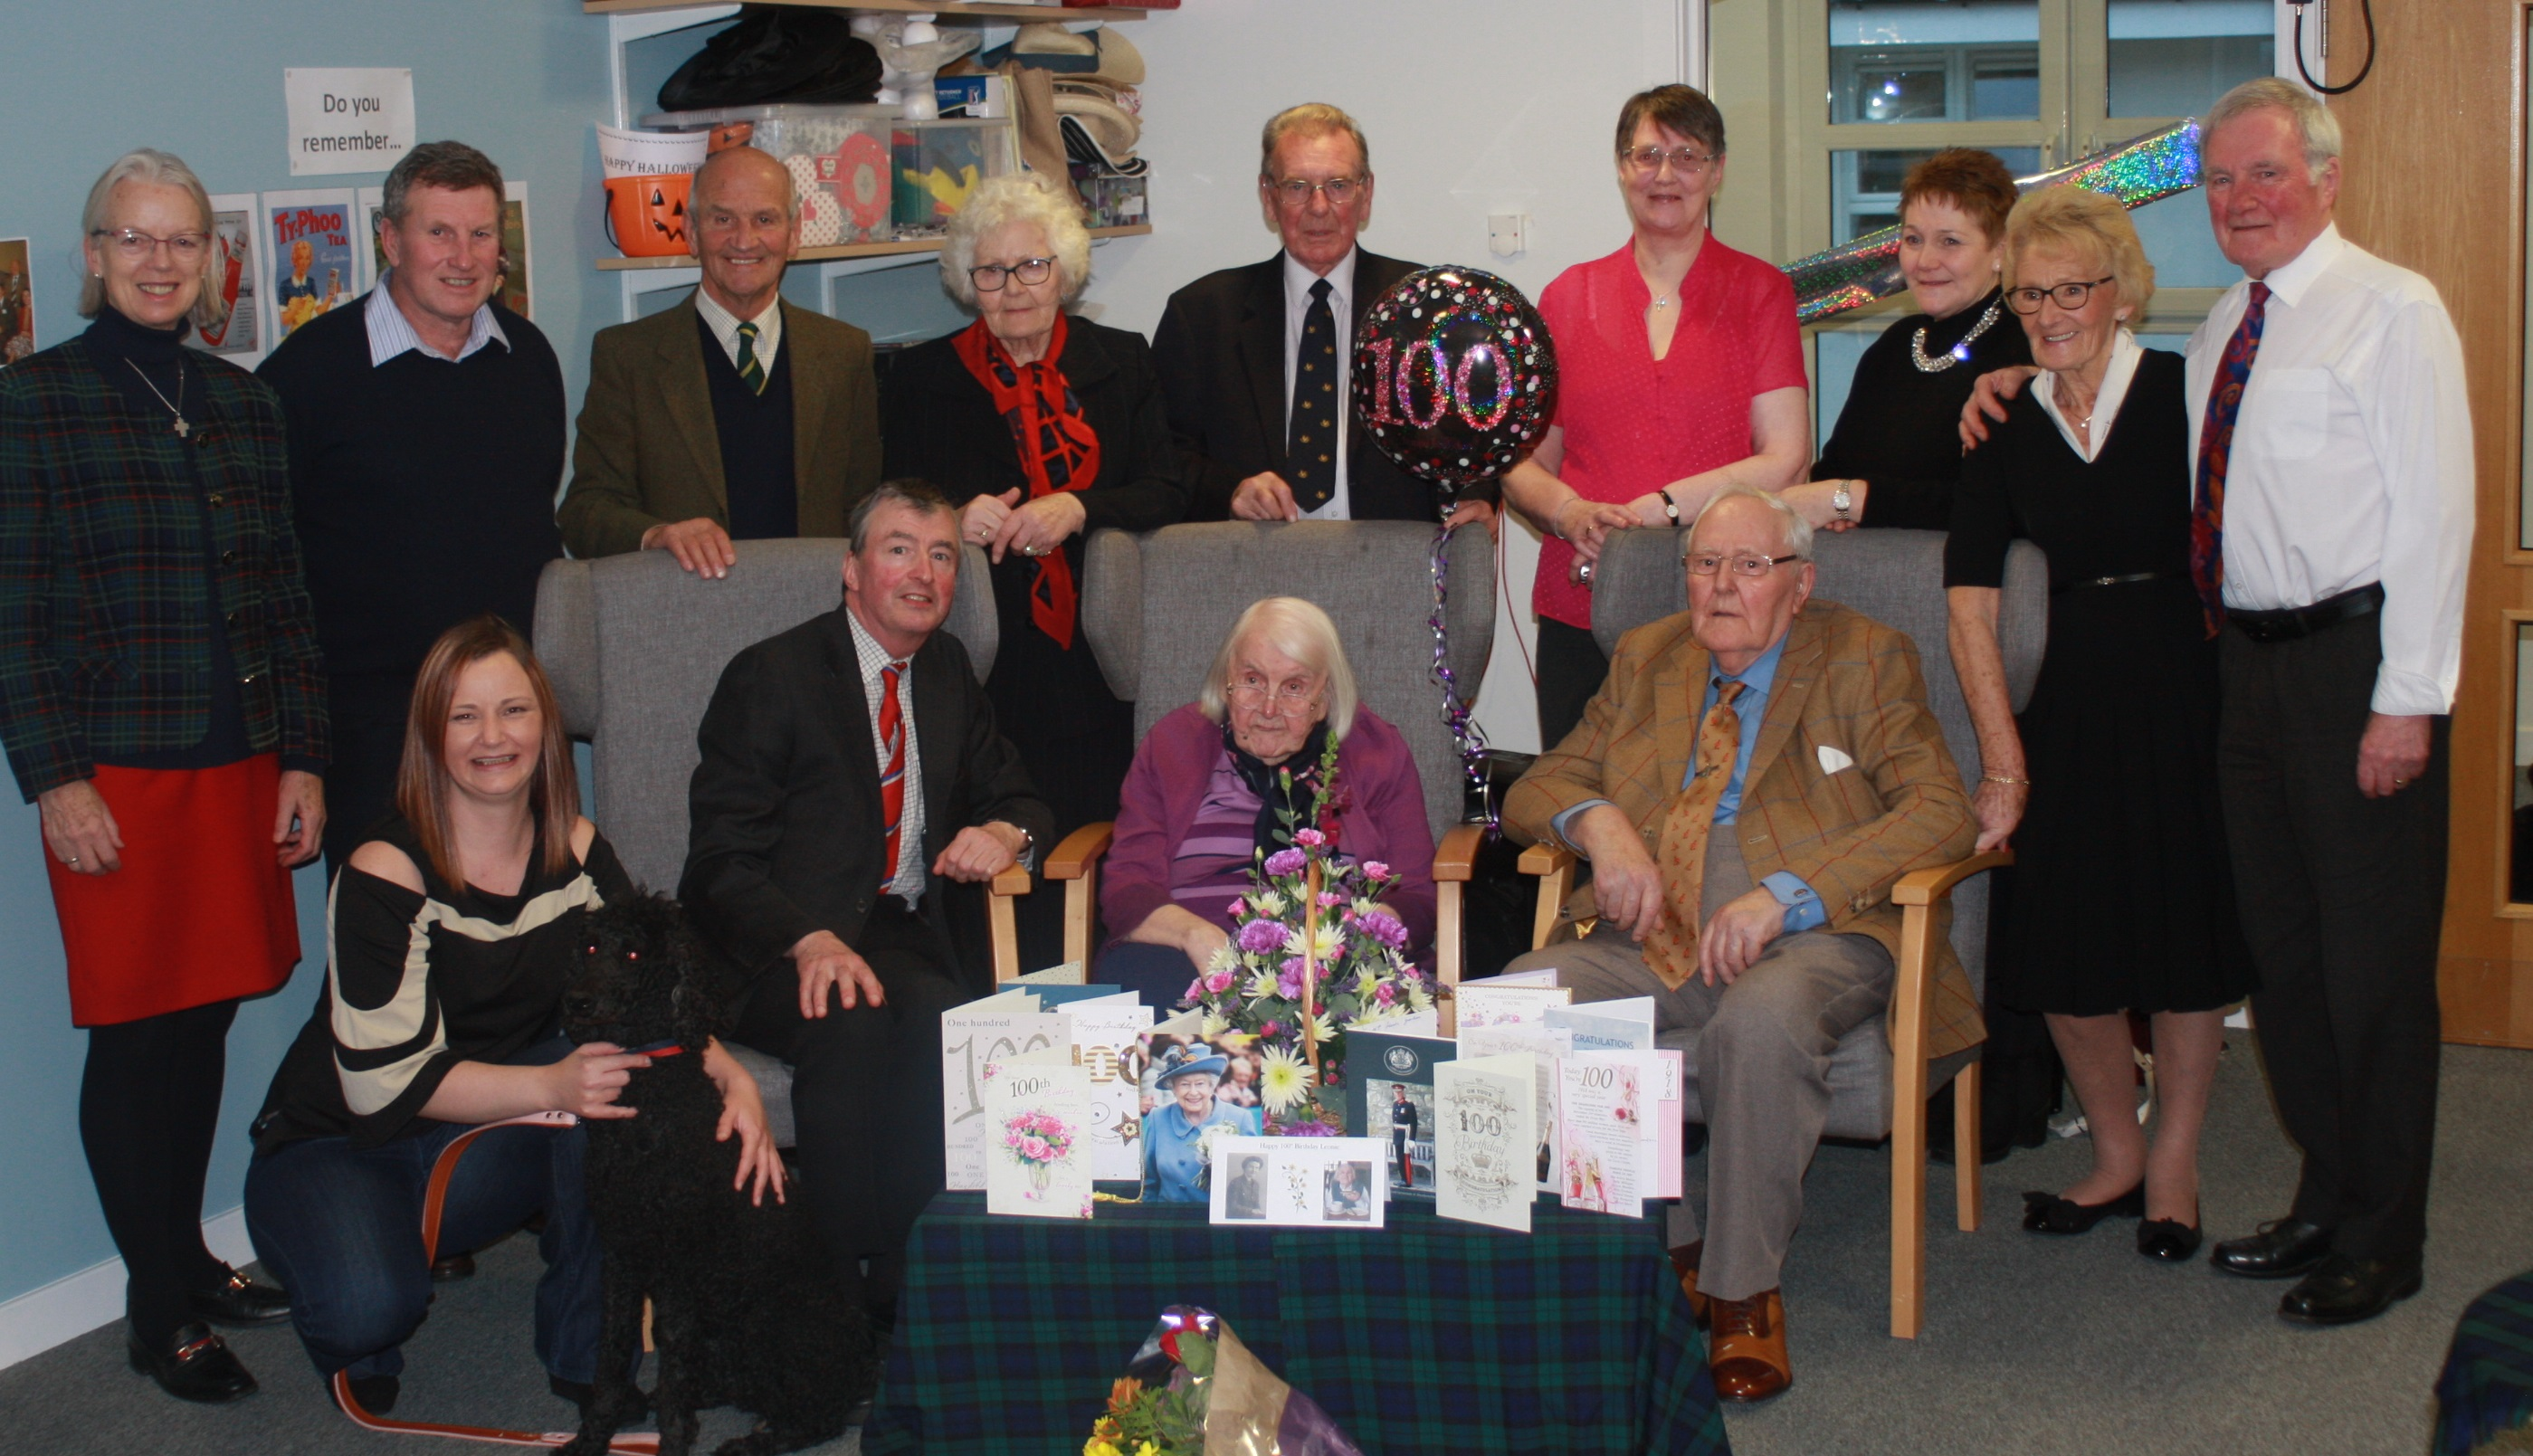 Leonie Gordon celebrated her 100th birthday surrounded by family and friends.